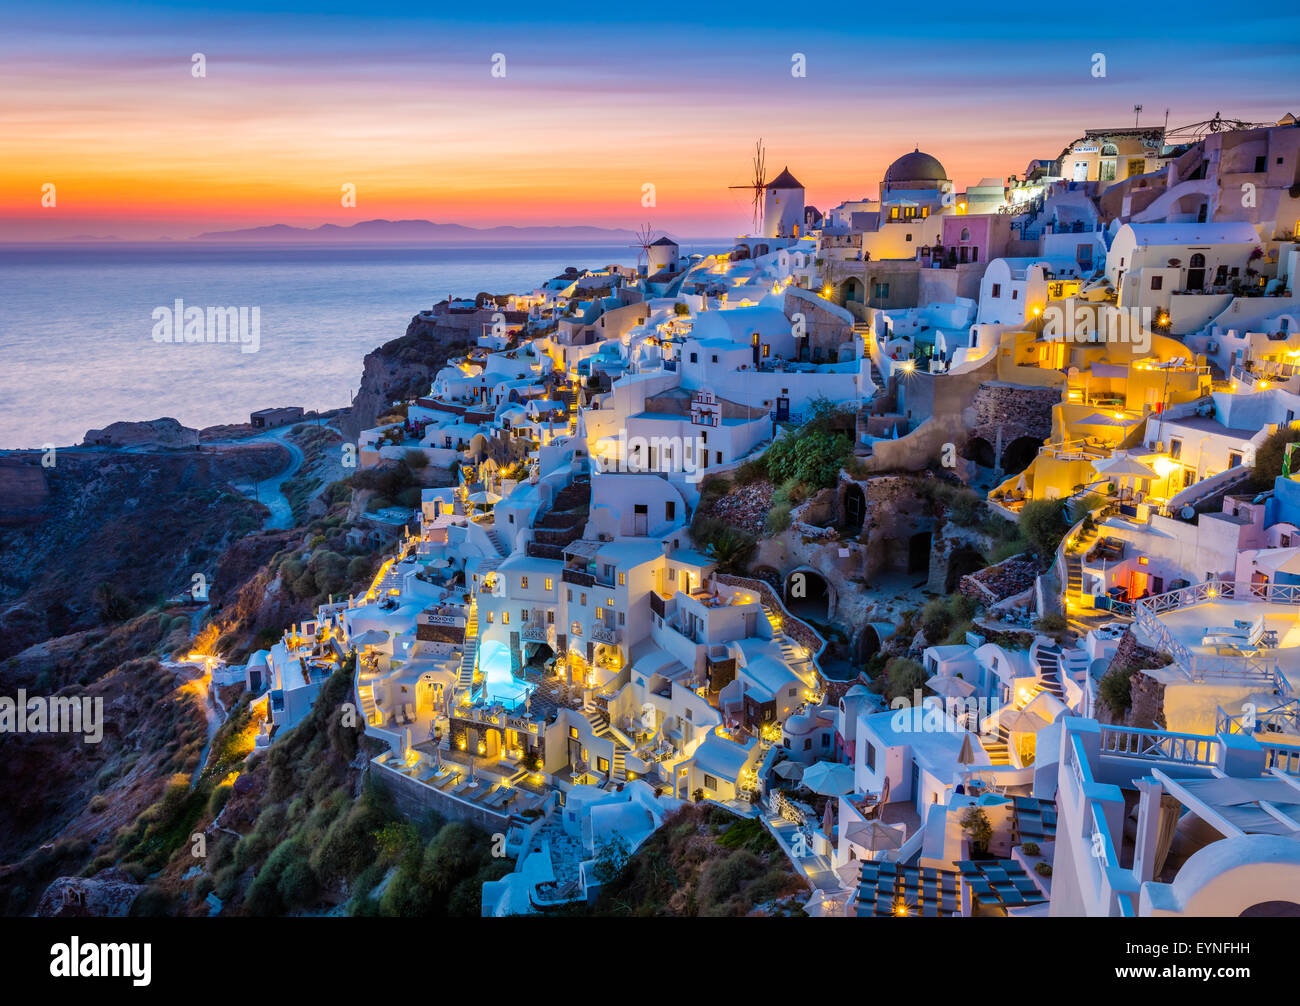 Iconic Sunset In The Town Of Oia On The Greek Island